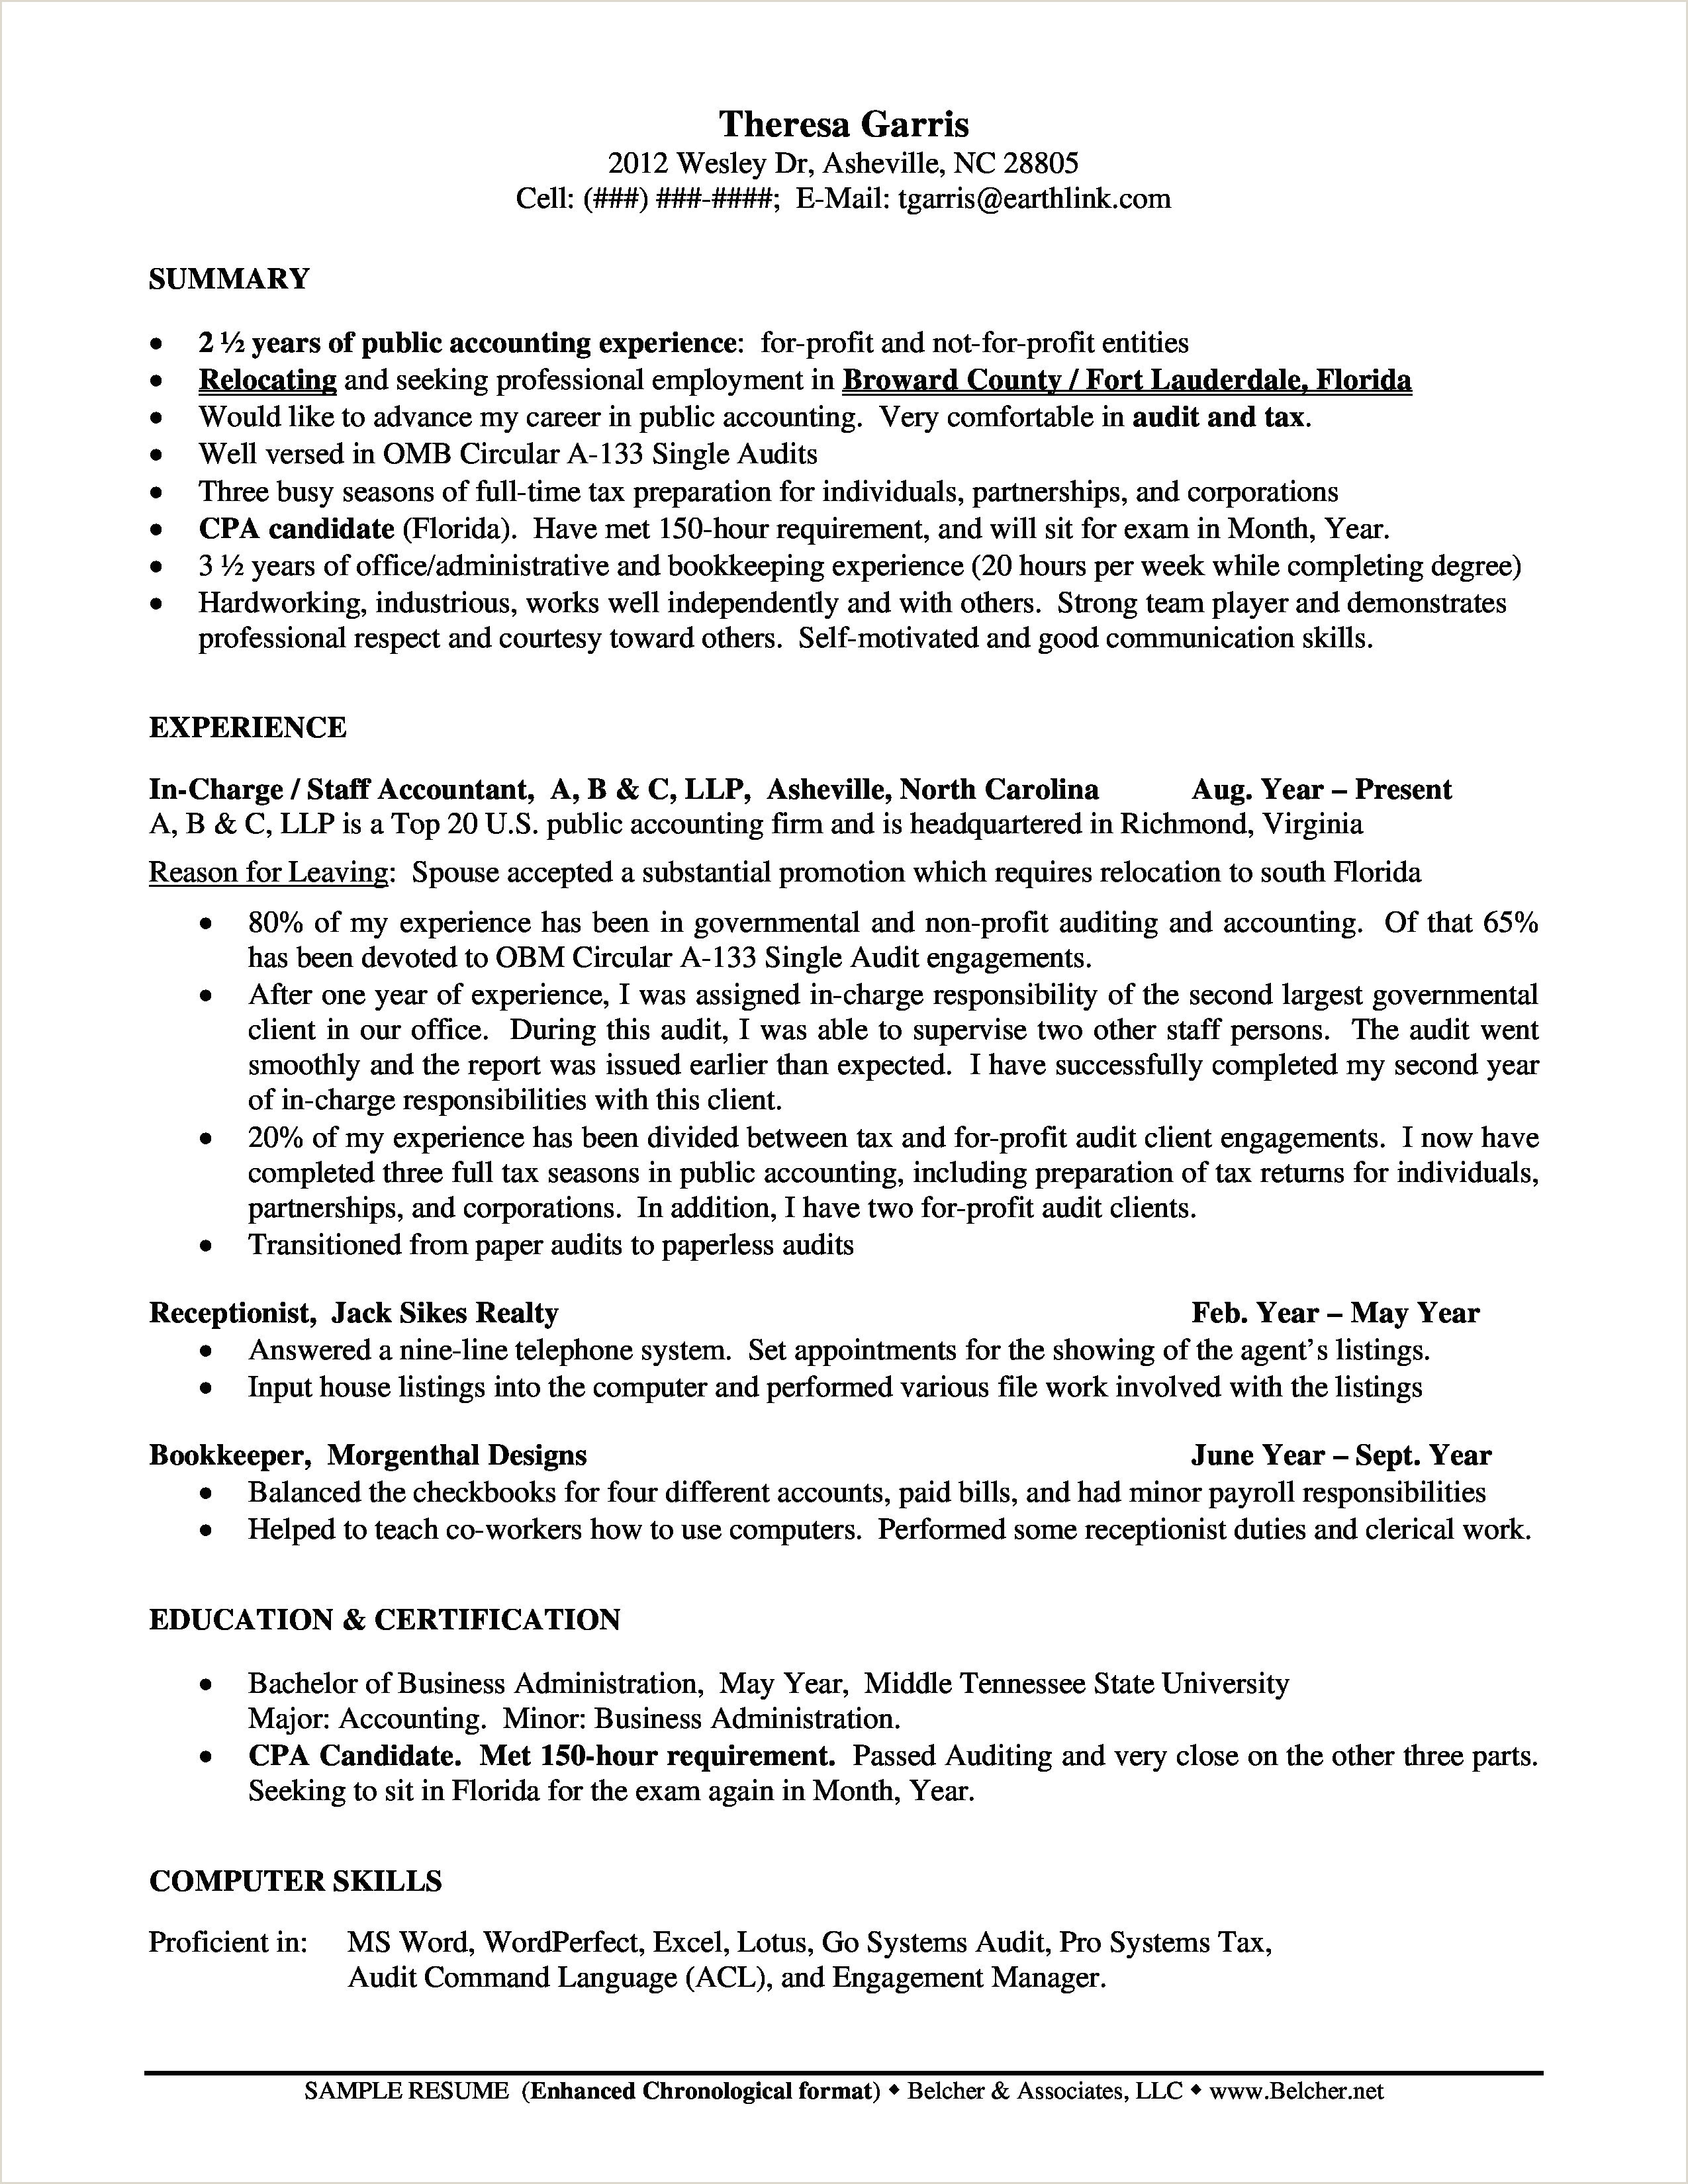 Clerical Skills Resume Free assistant Skills Resume Luxury